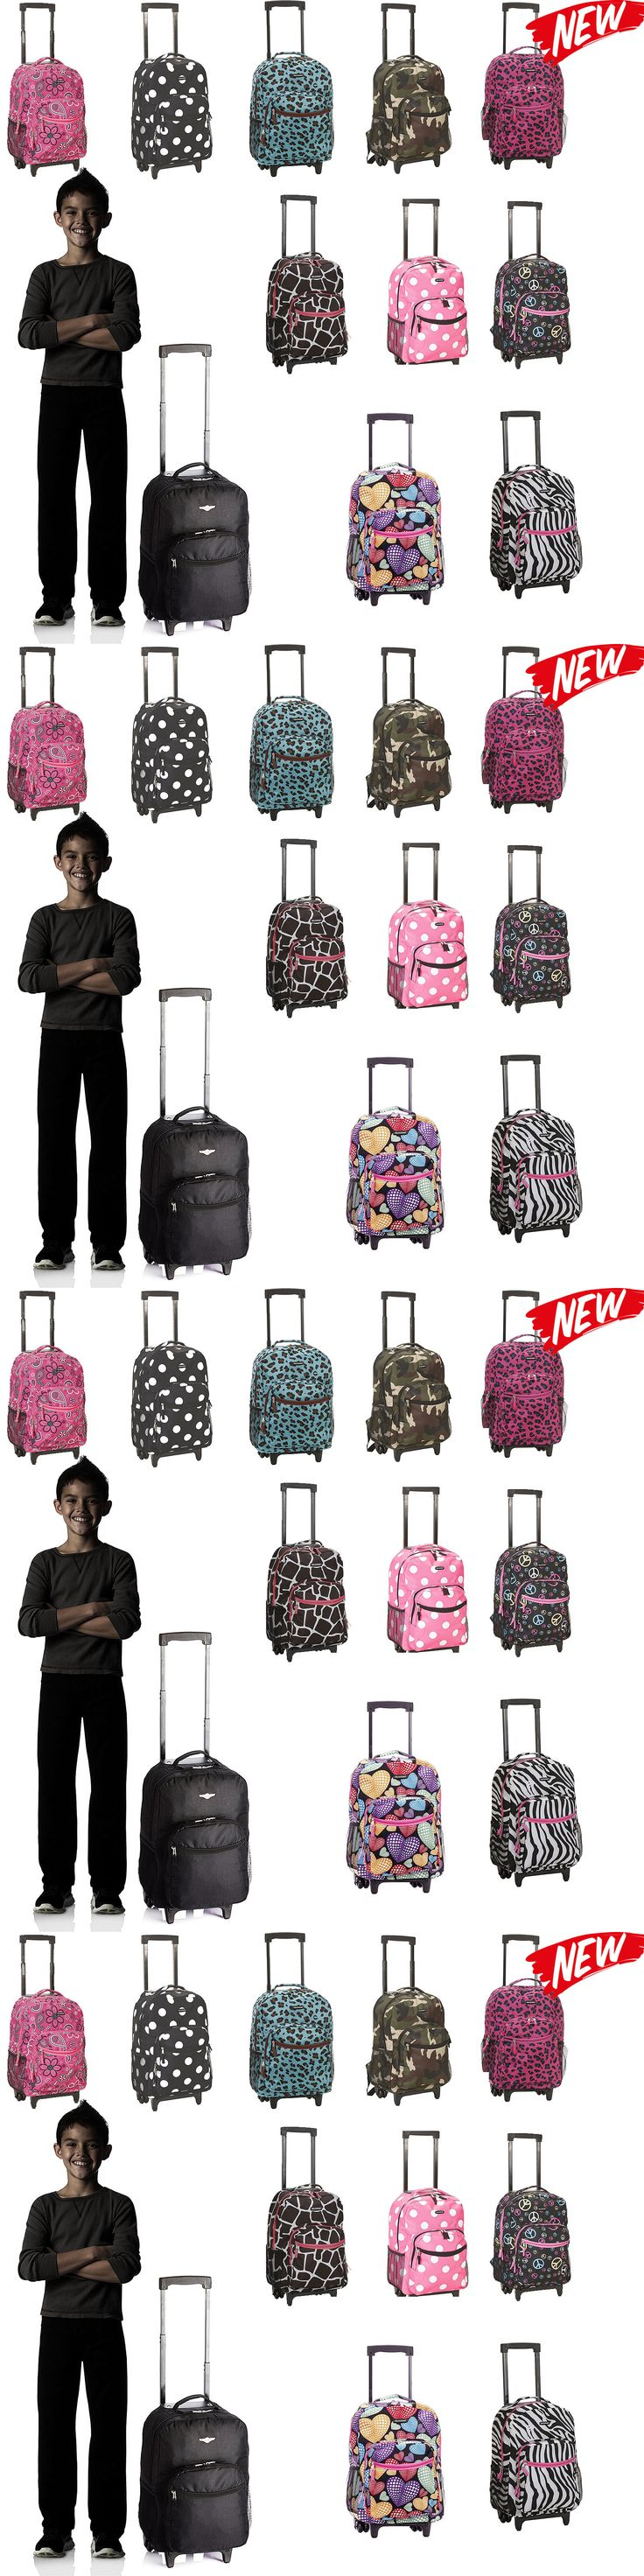 Luggage 16080: 17 Inch Rolling Backpack Rockland Luggage Double Wheels Pocket Travel 18 Colors -> BUY IT NOW ONLY: $34.4 on eBay!